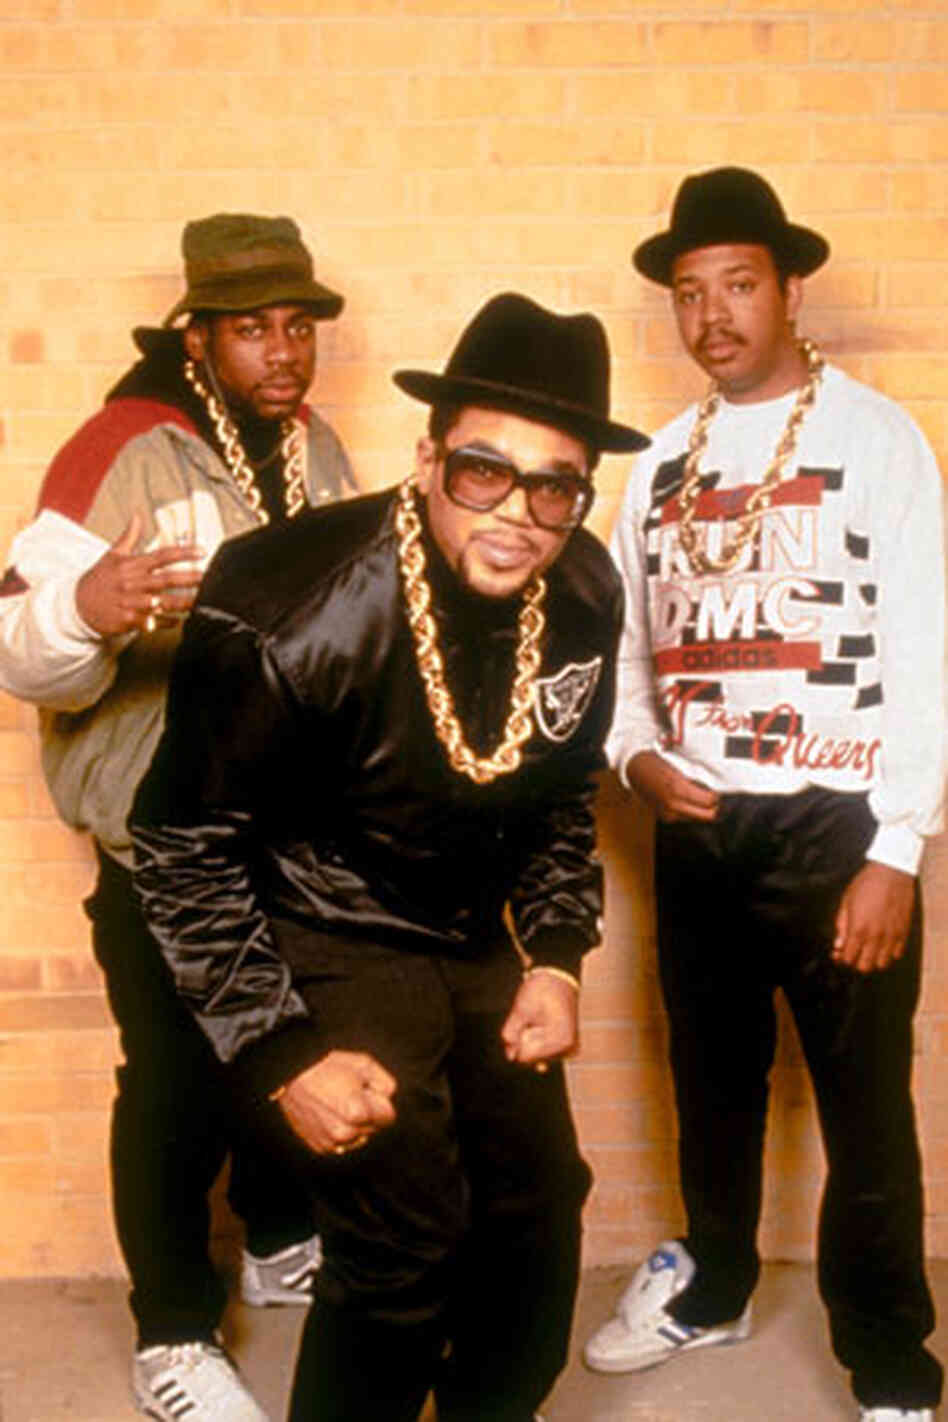 RUN DMC; credit: Fotex Shooting Star/Sony Legacy